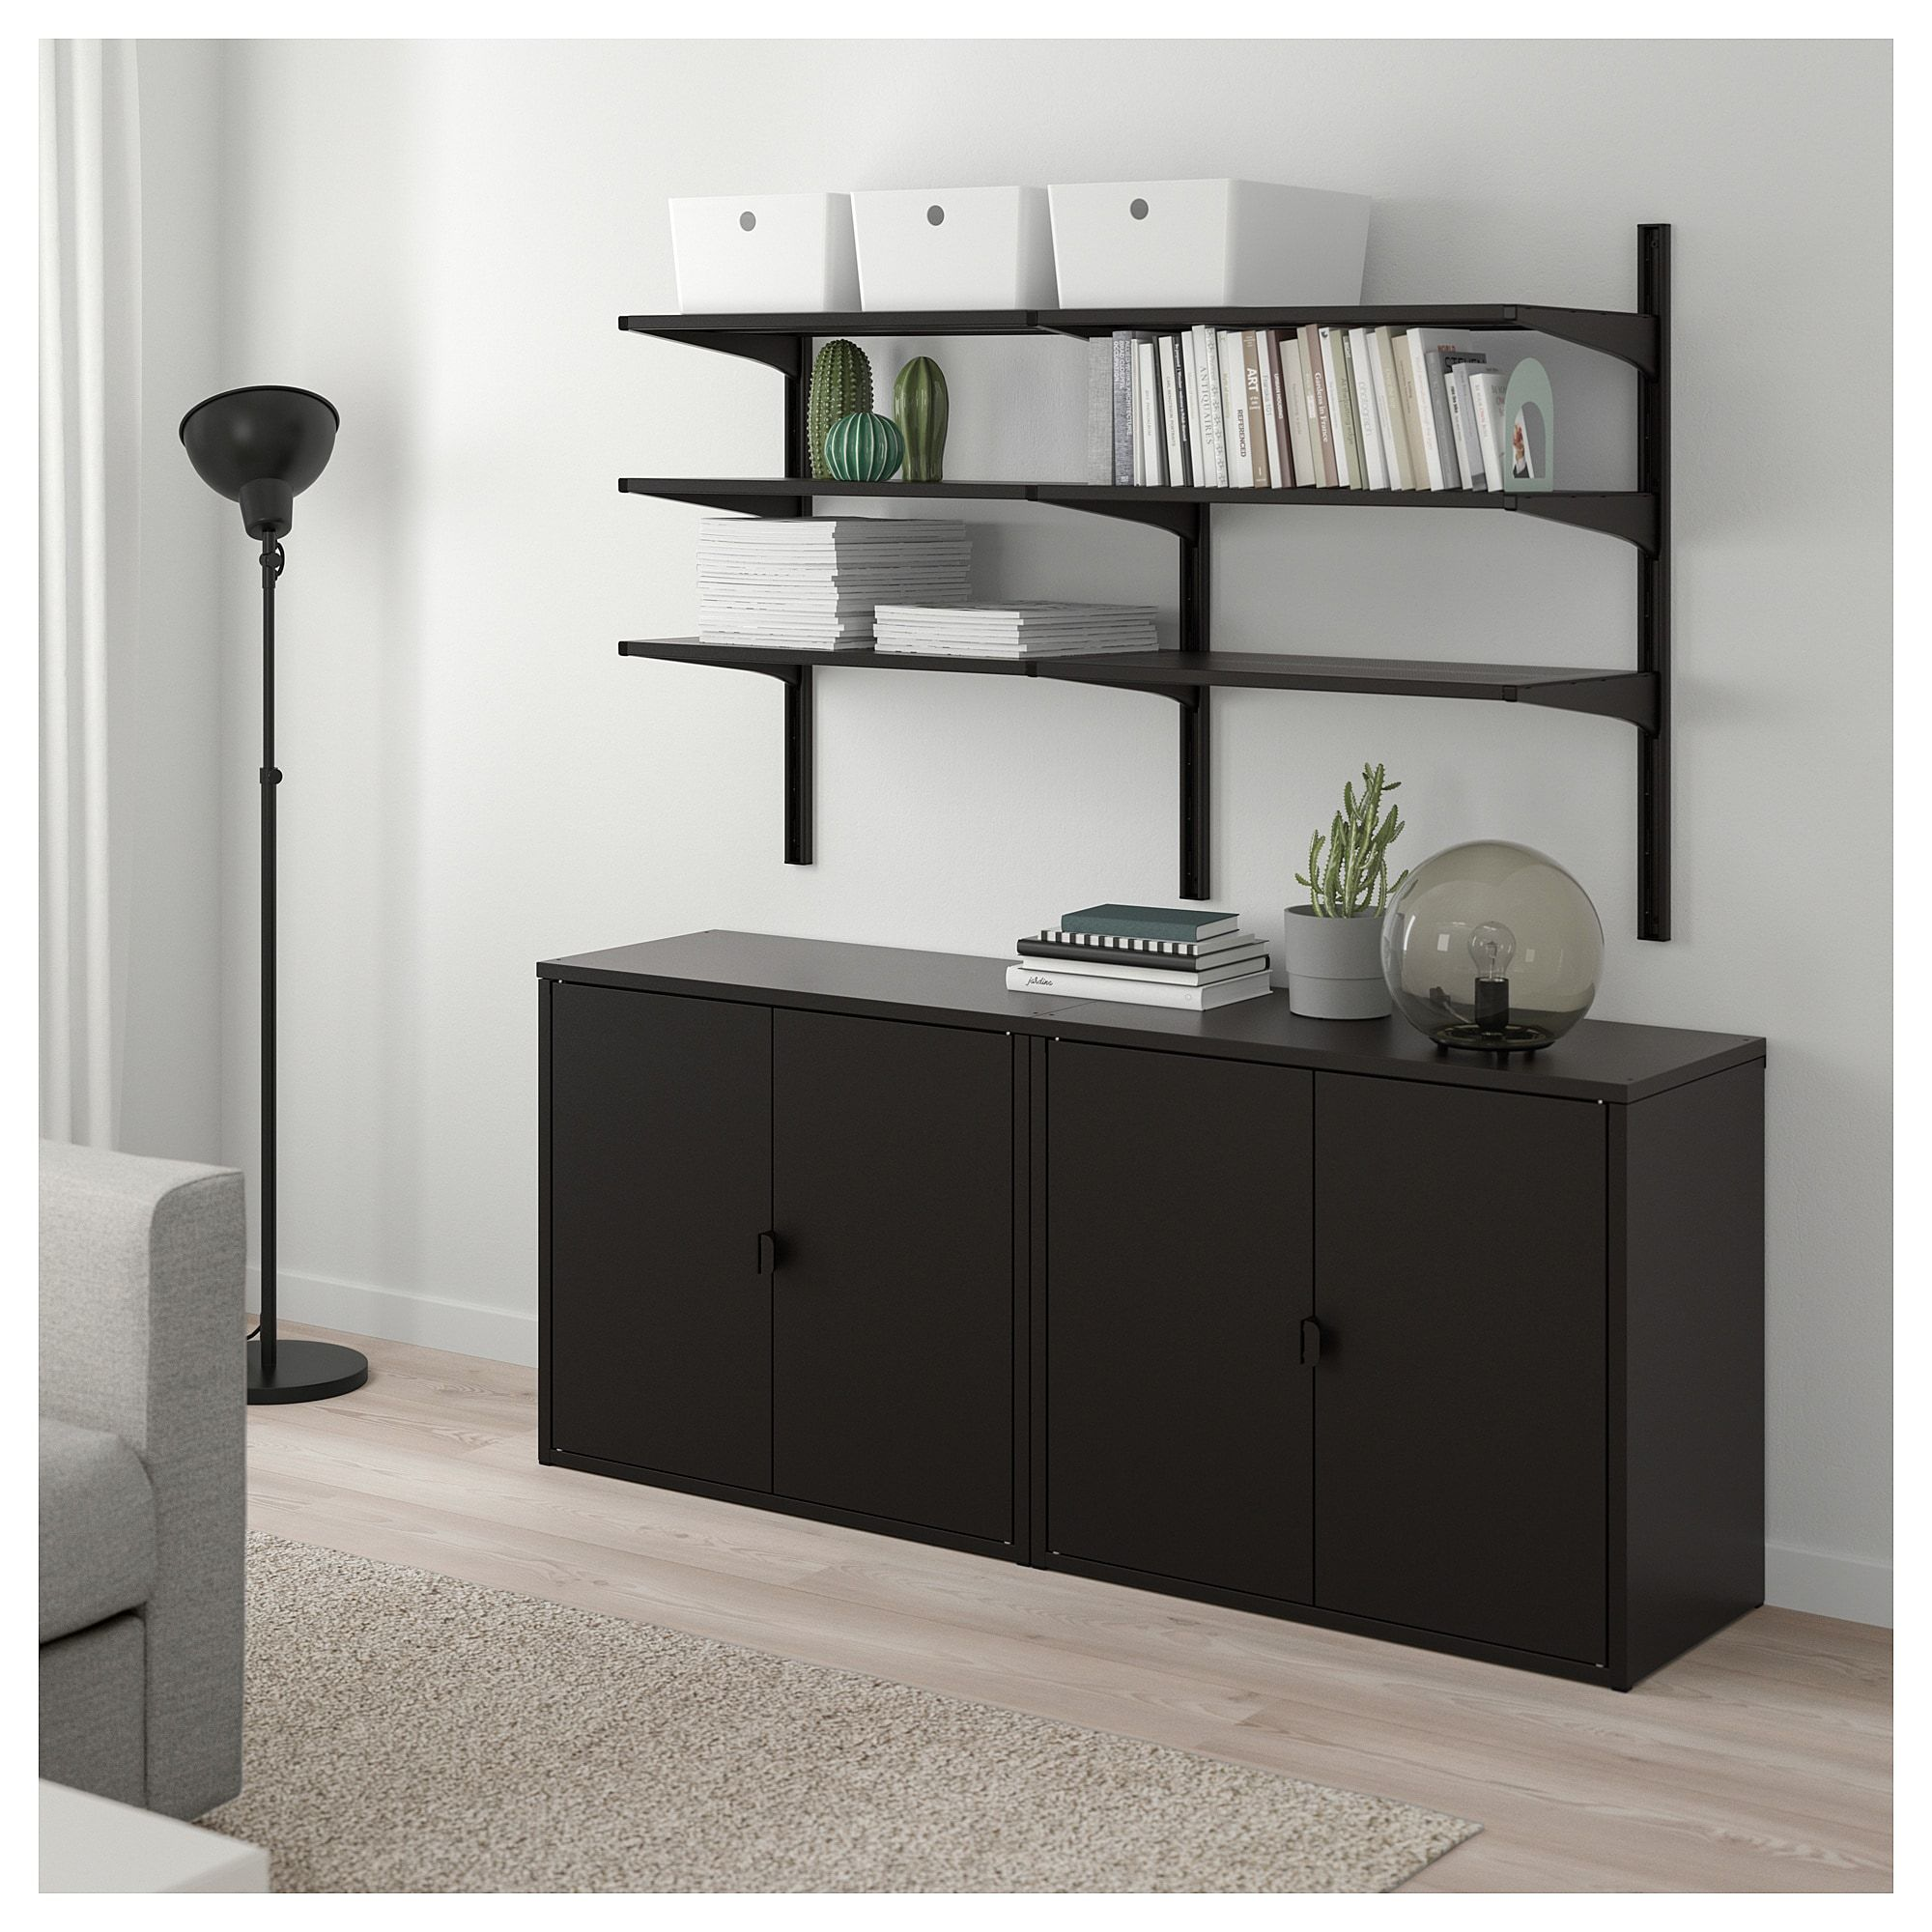 Ikea Glasregal Schwarz Algot Bror Regal Mit Schrank Schwarz In 2019 Products Ikea